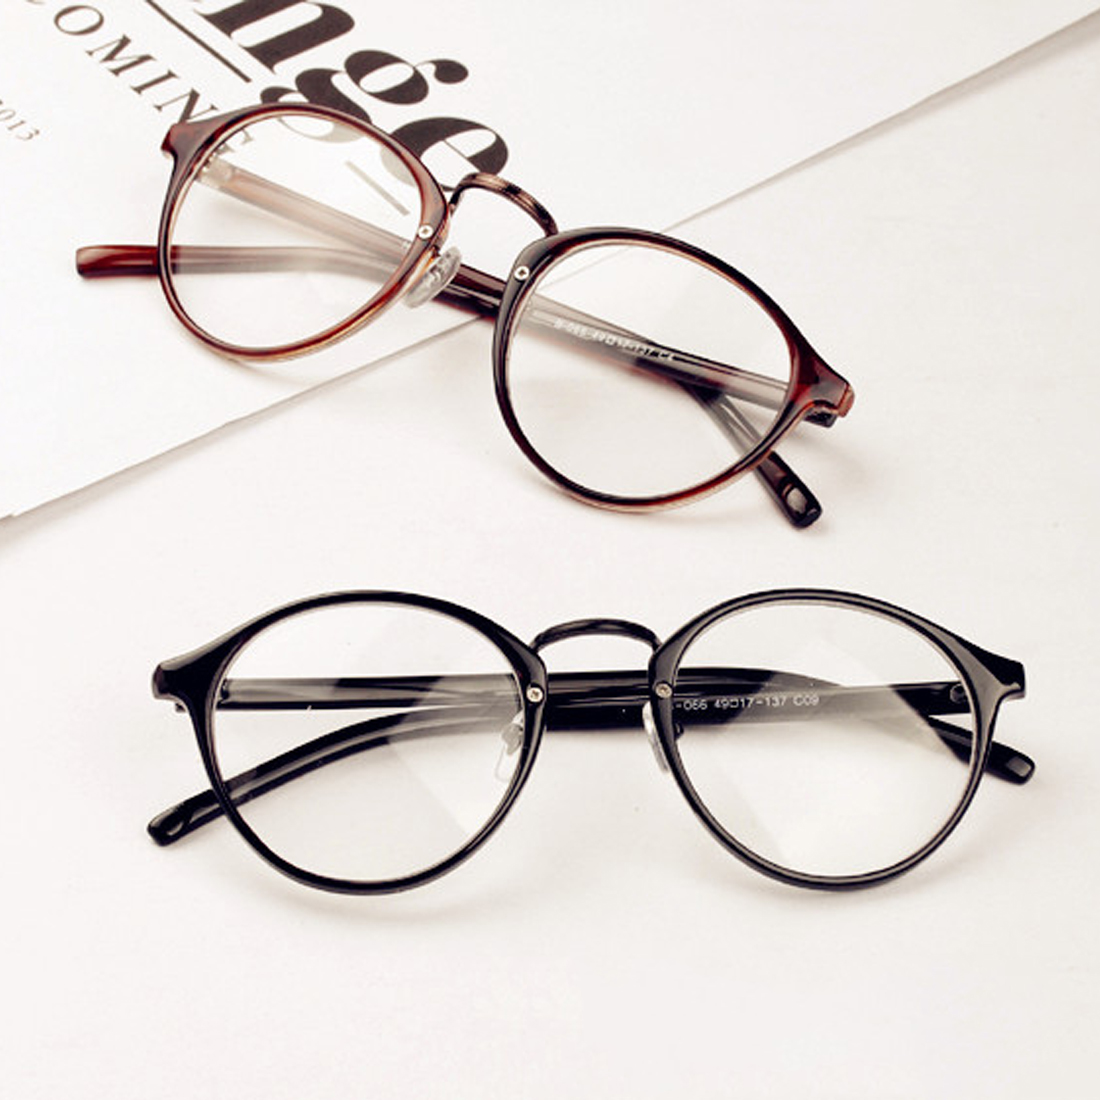 New  Return Round Optical Lens Glasses Frame Clear Glass Women Transparent Eyeglasses Women Ultra-light Eye Glasses Frame